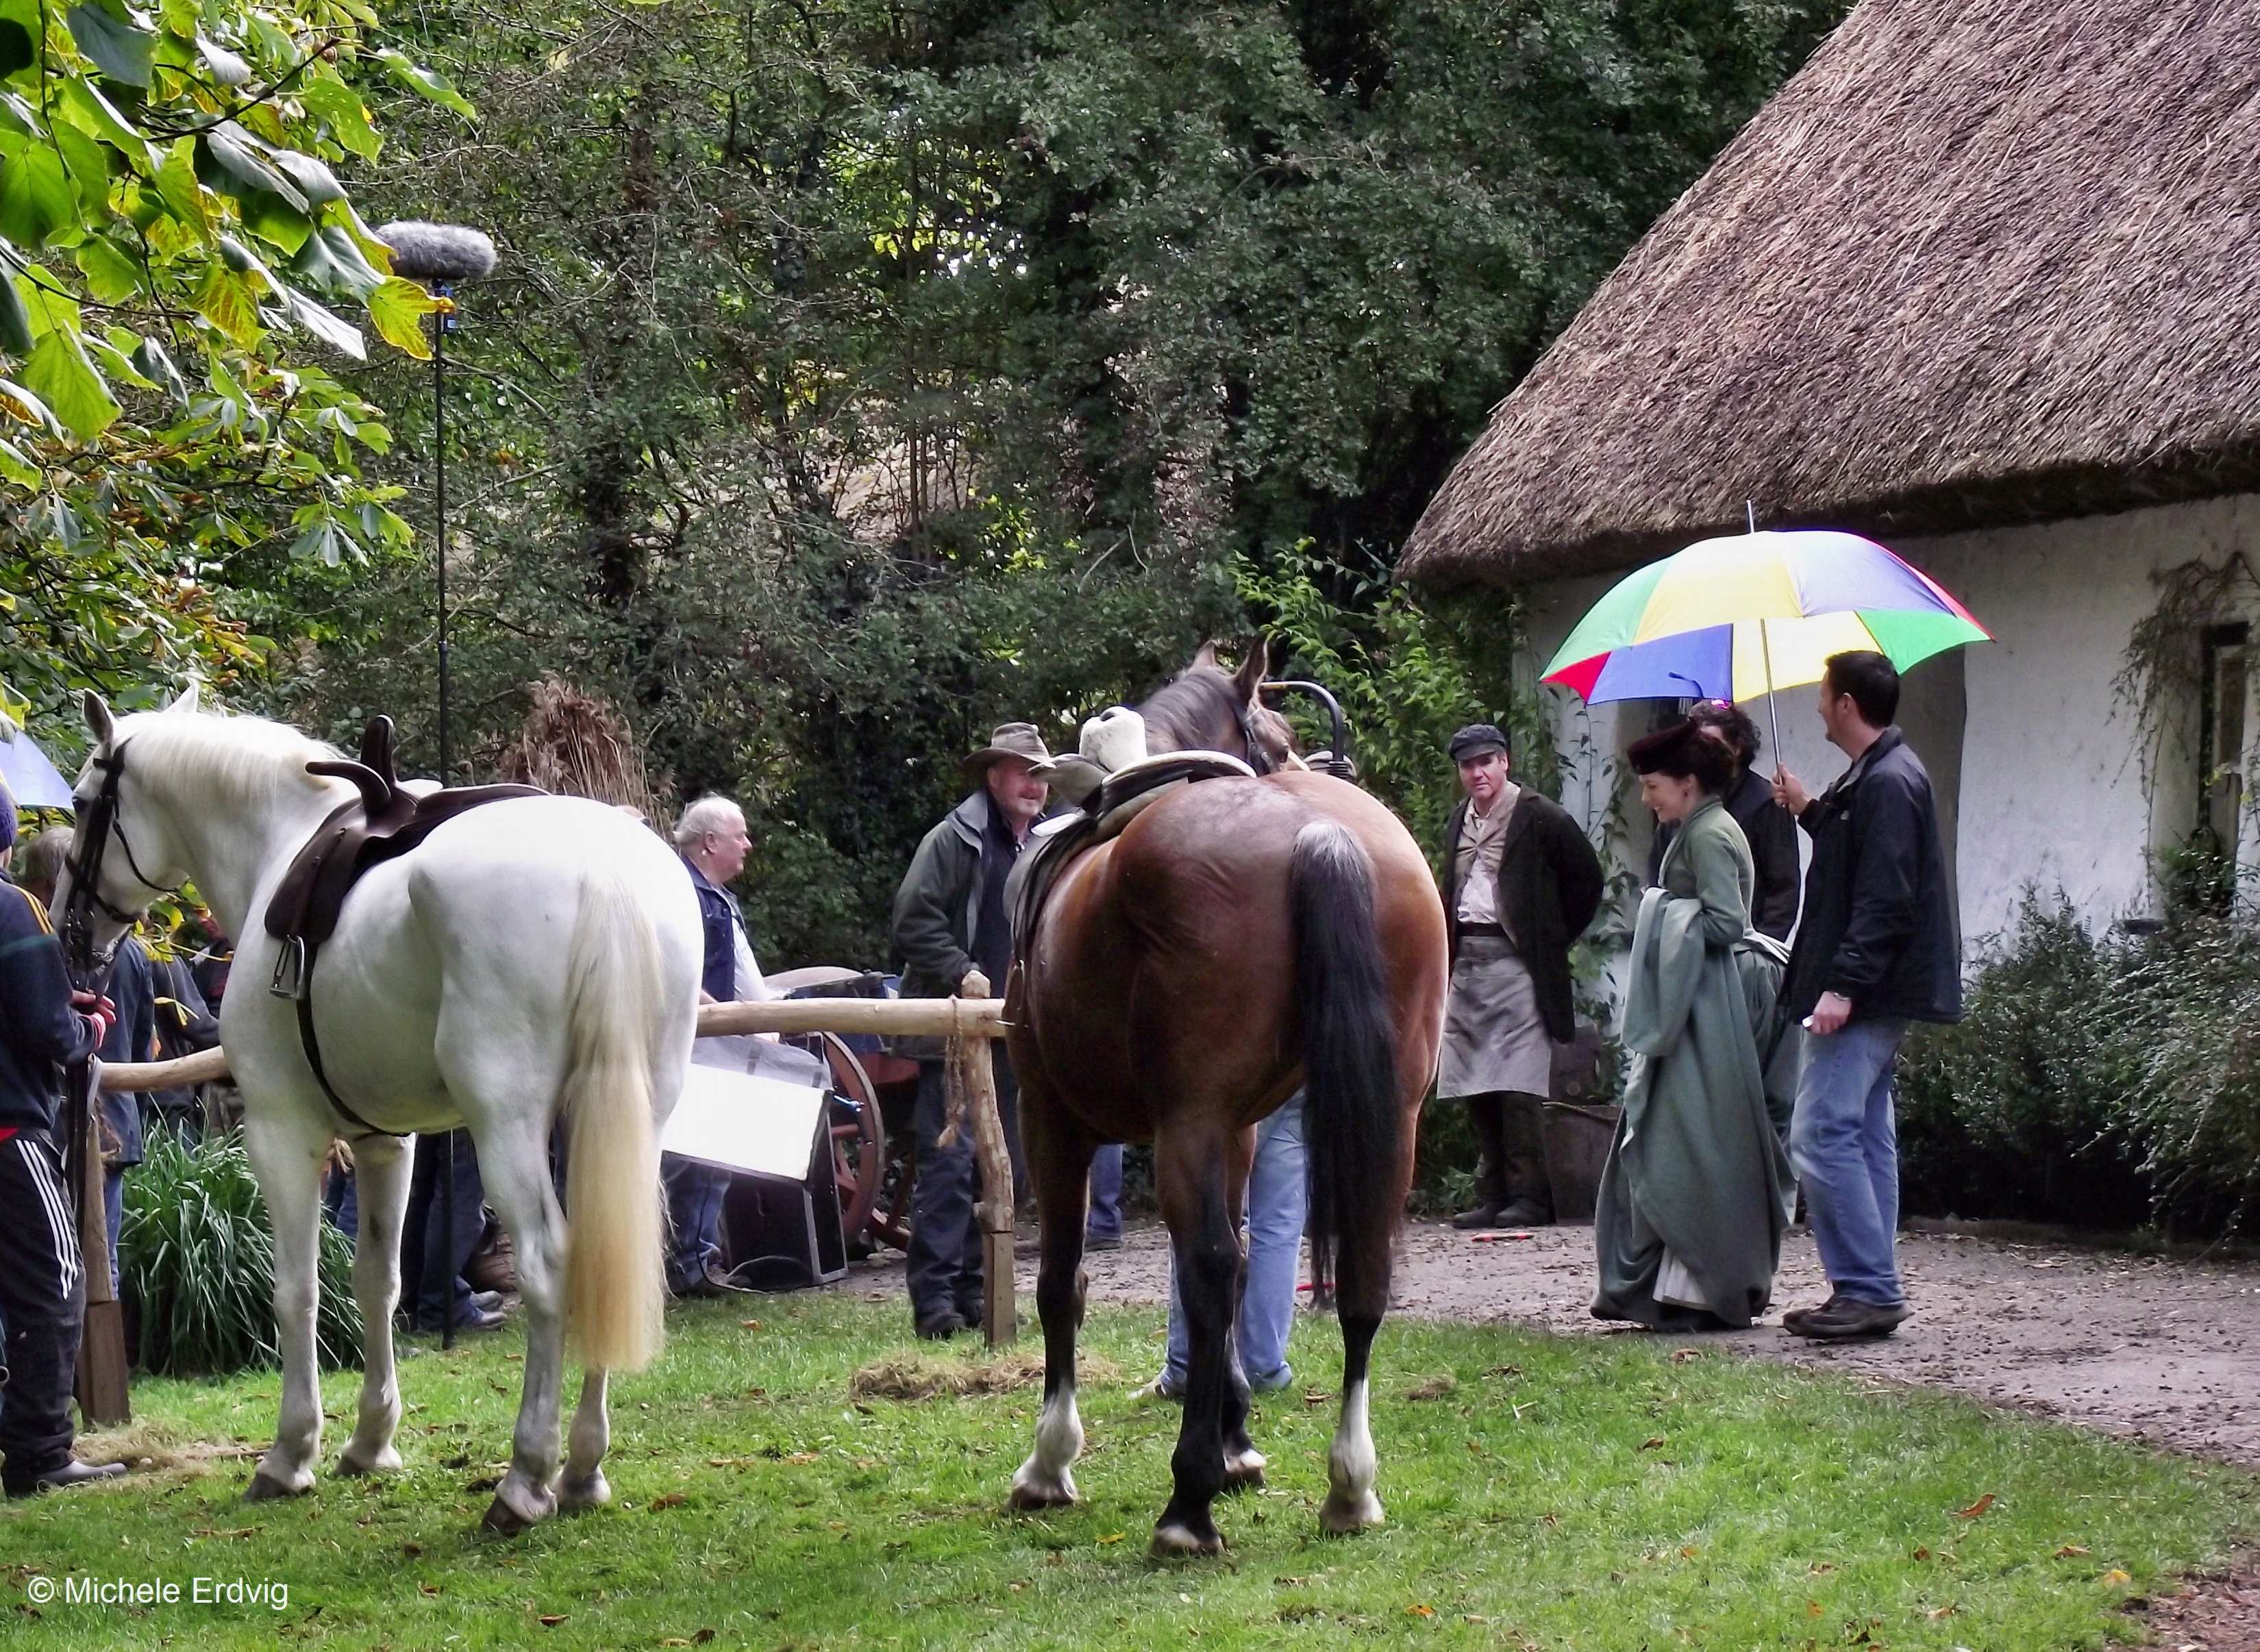 Filming at Bunratty Folk Park